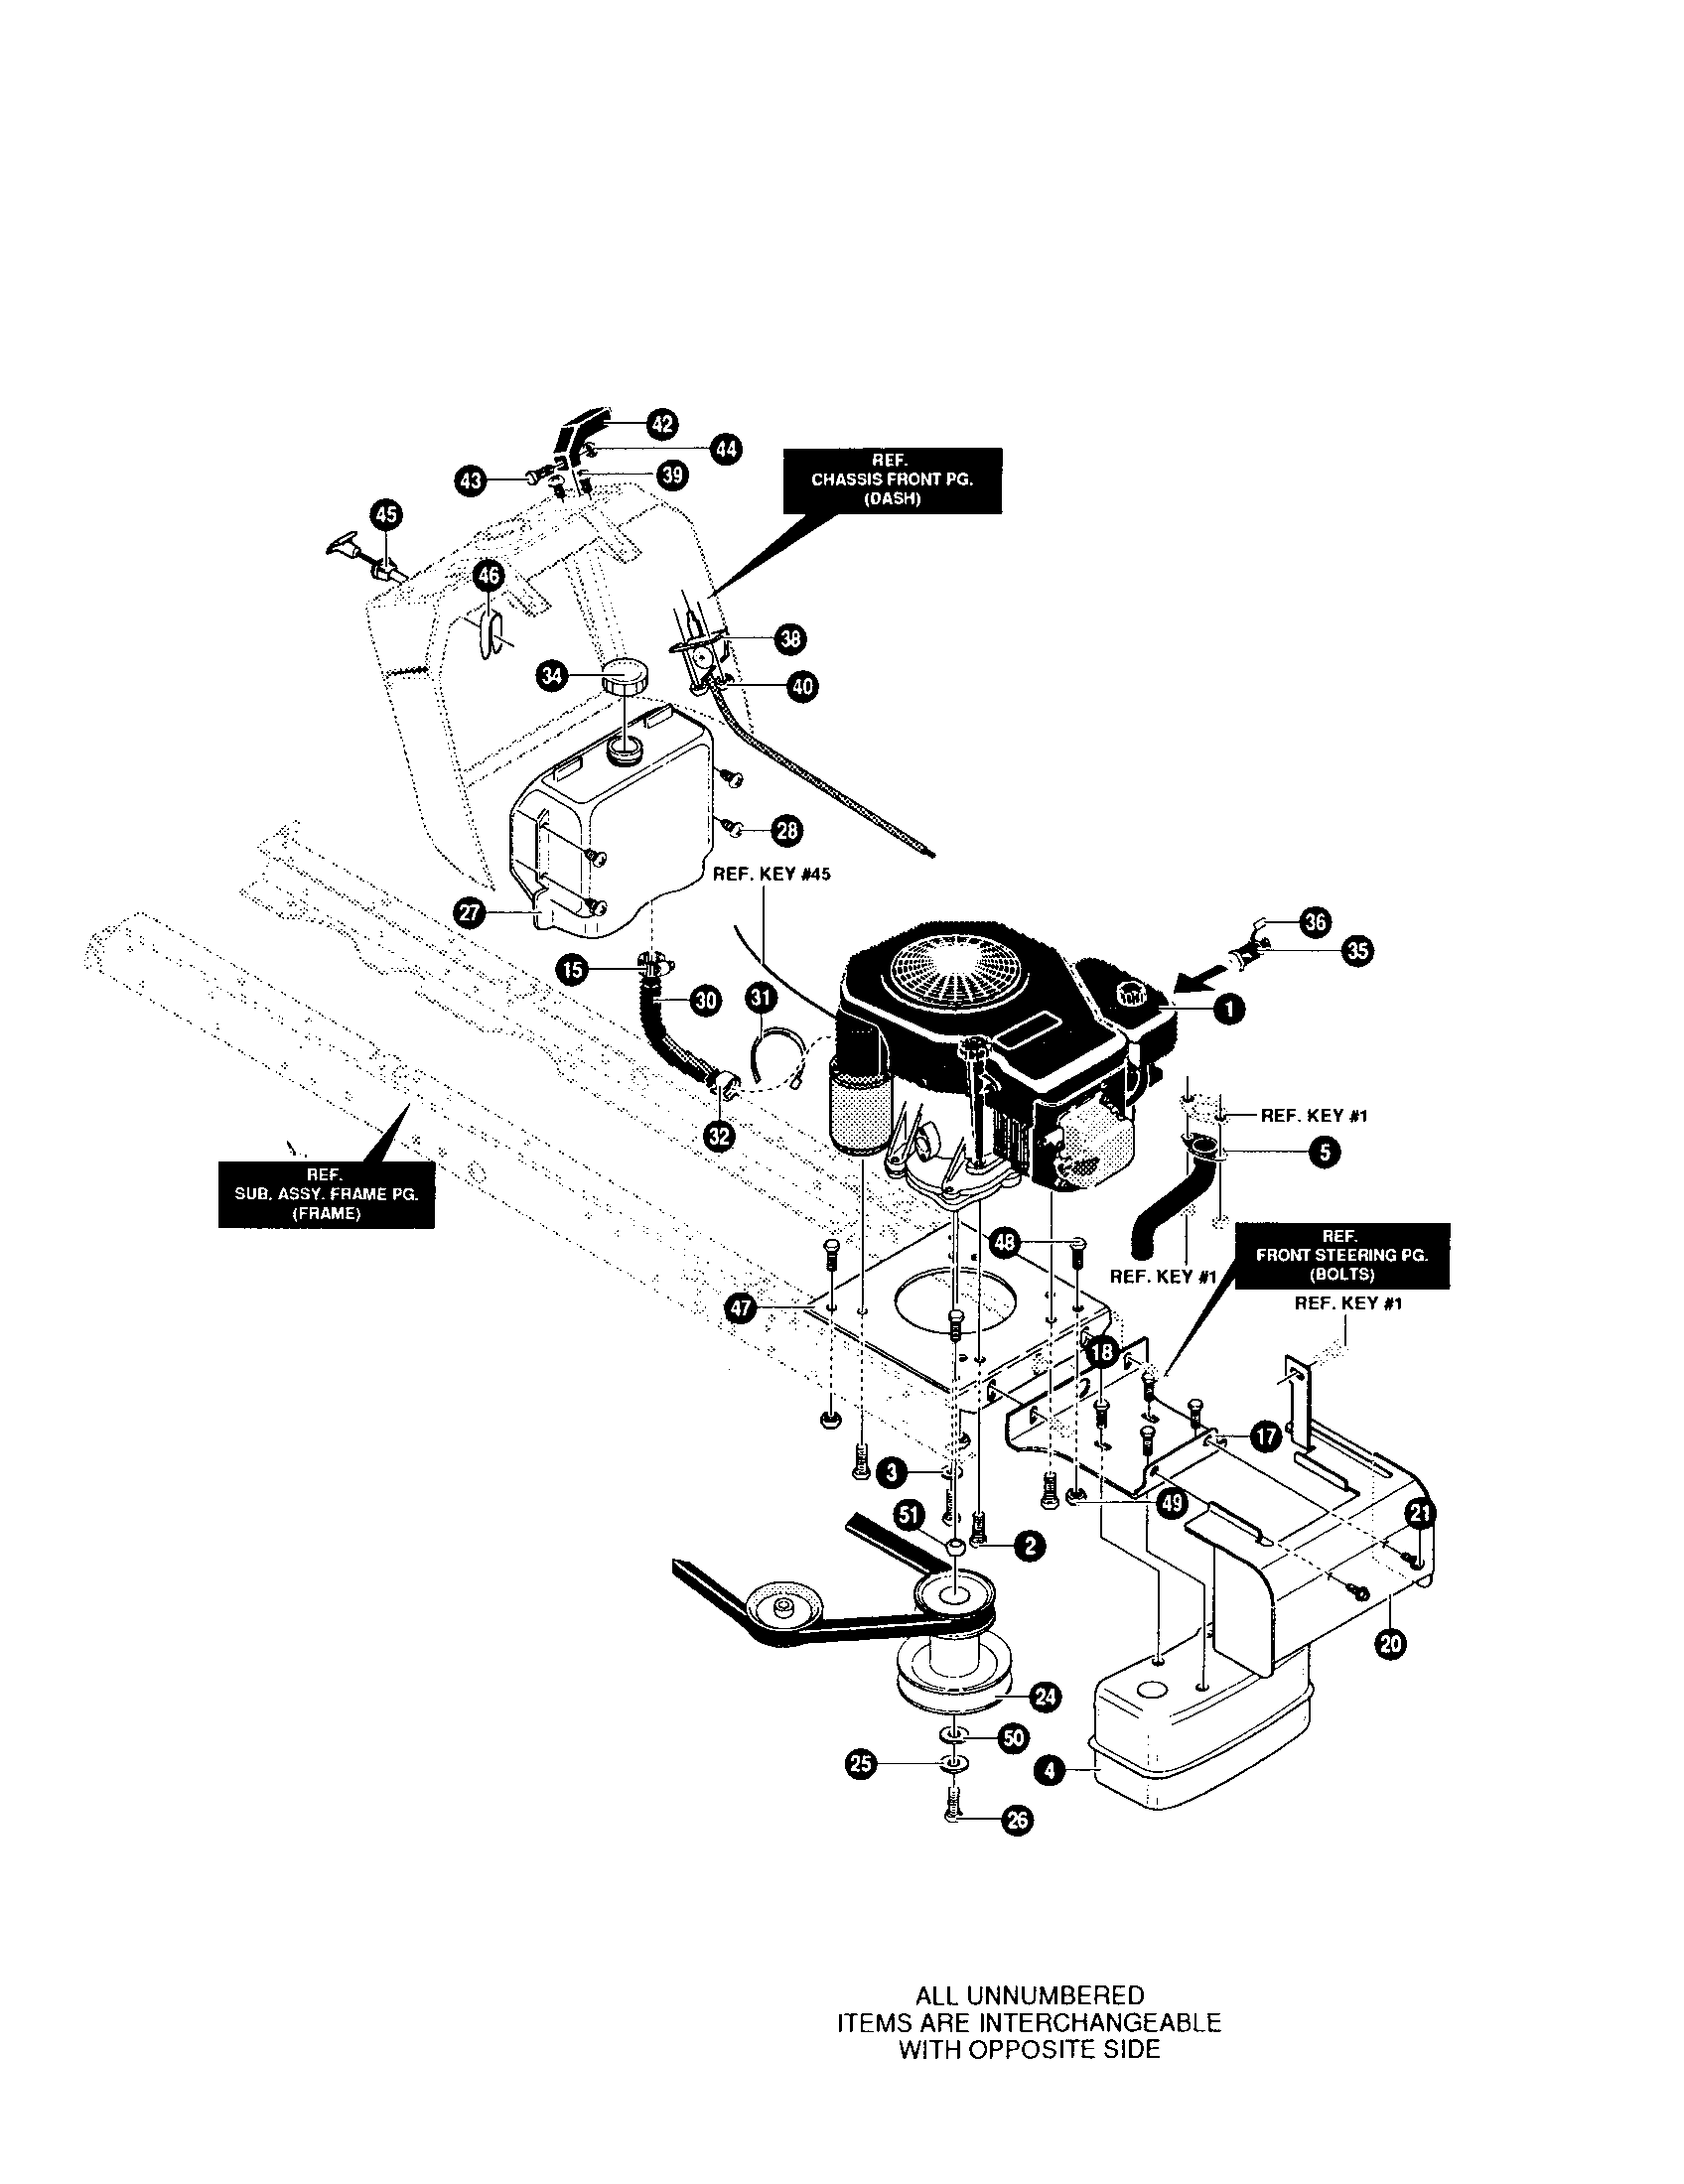 KOHLER ENGINE PARTS MANUAL PDF